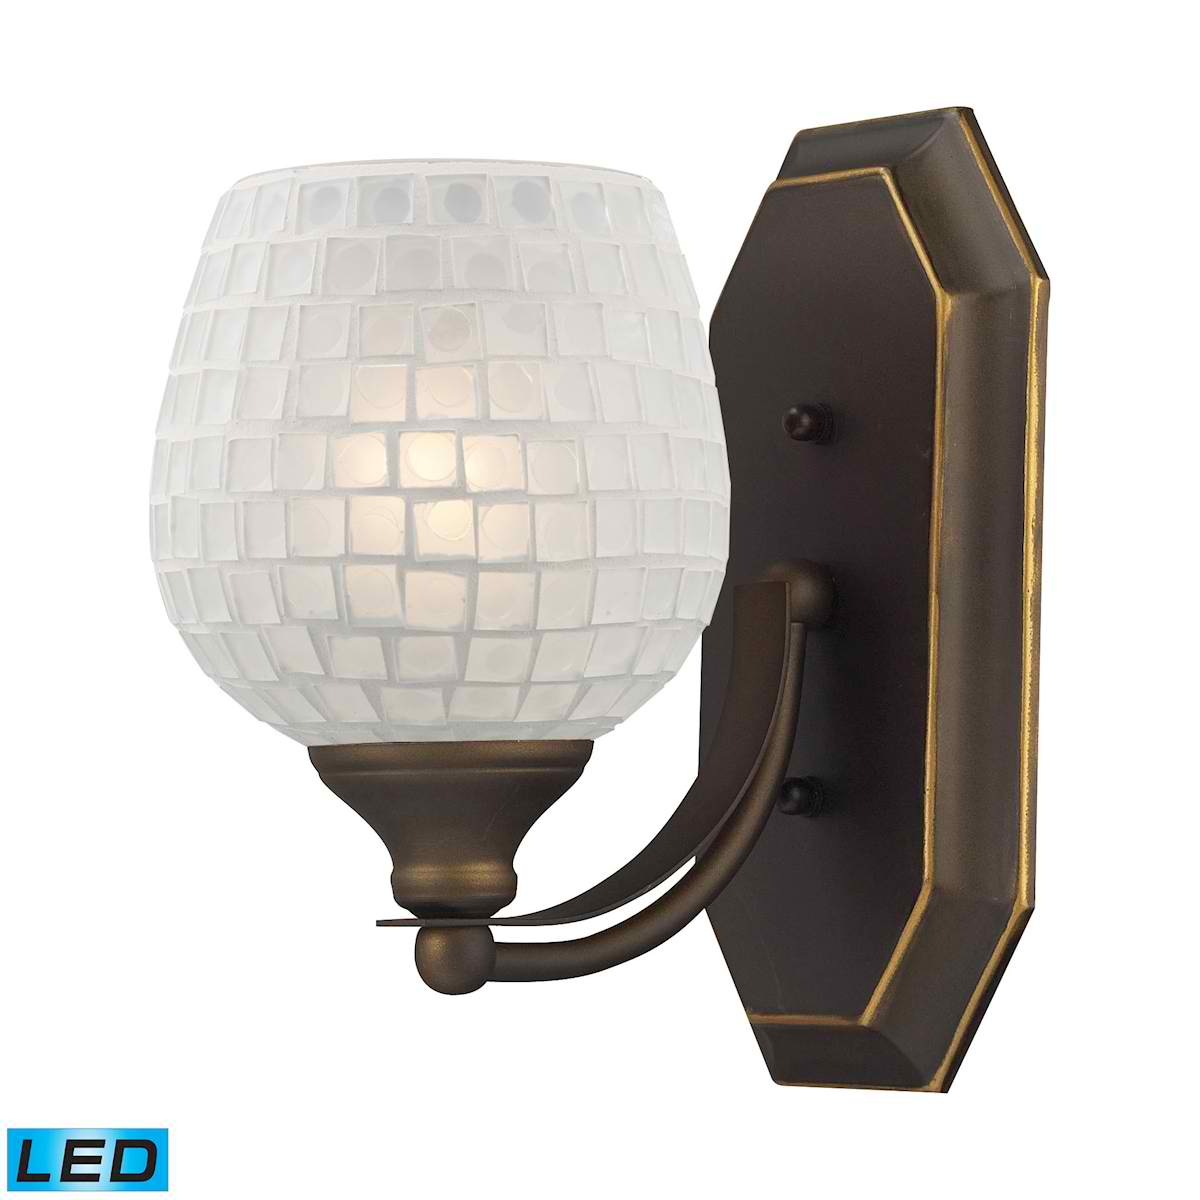 1 Light Vanity in Aged Bronze and White Mosaic Glass - LED Offering Up To 800 Lumens (60 Watt Equivalent)